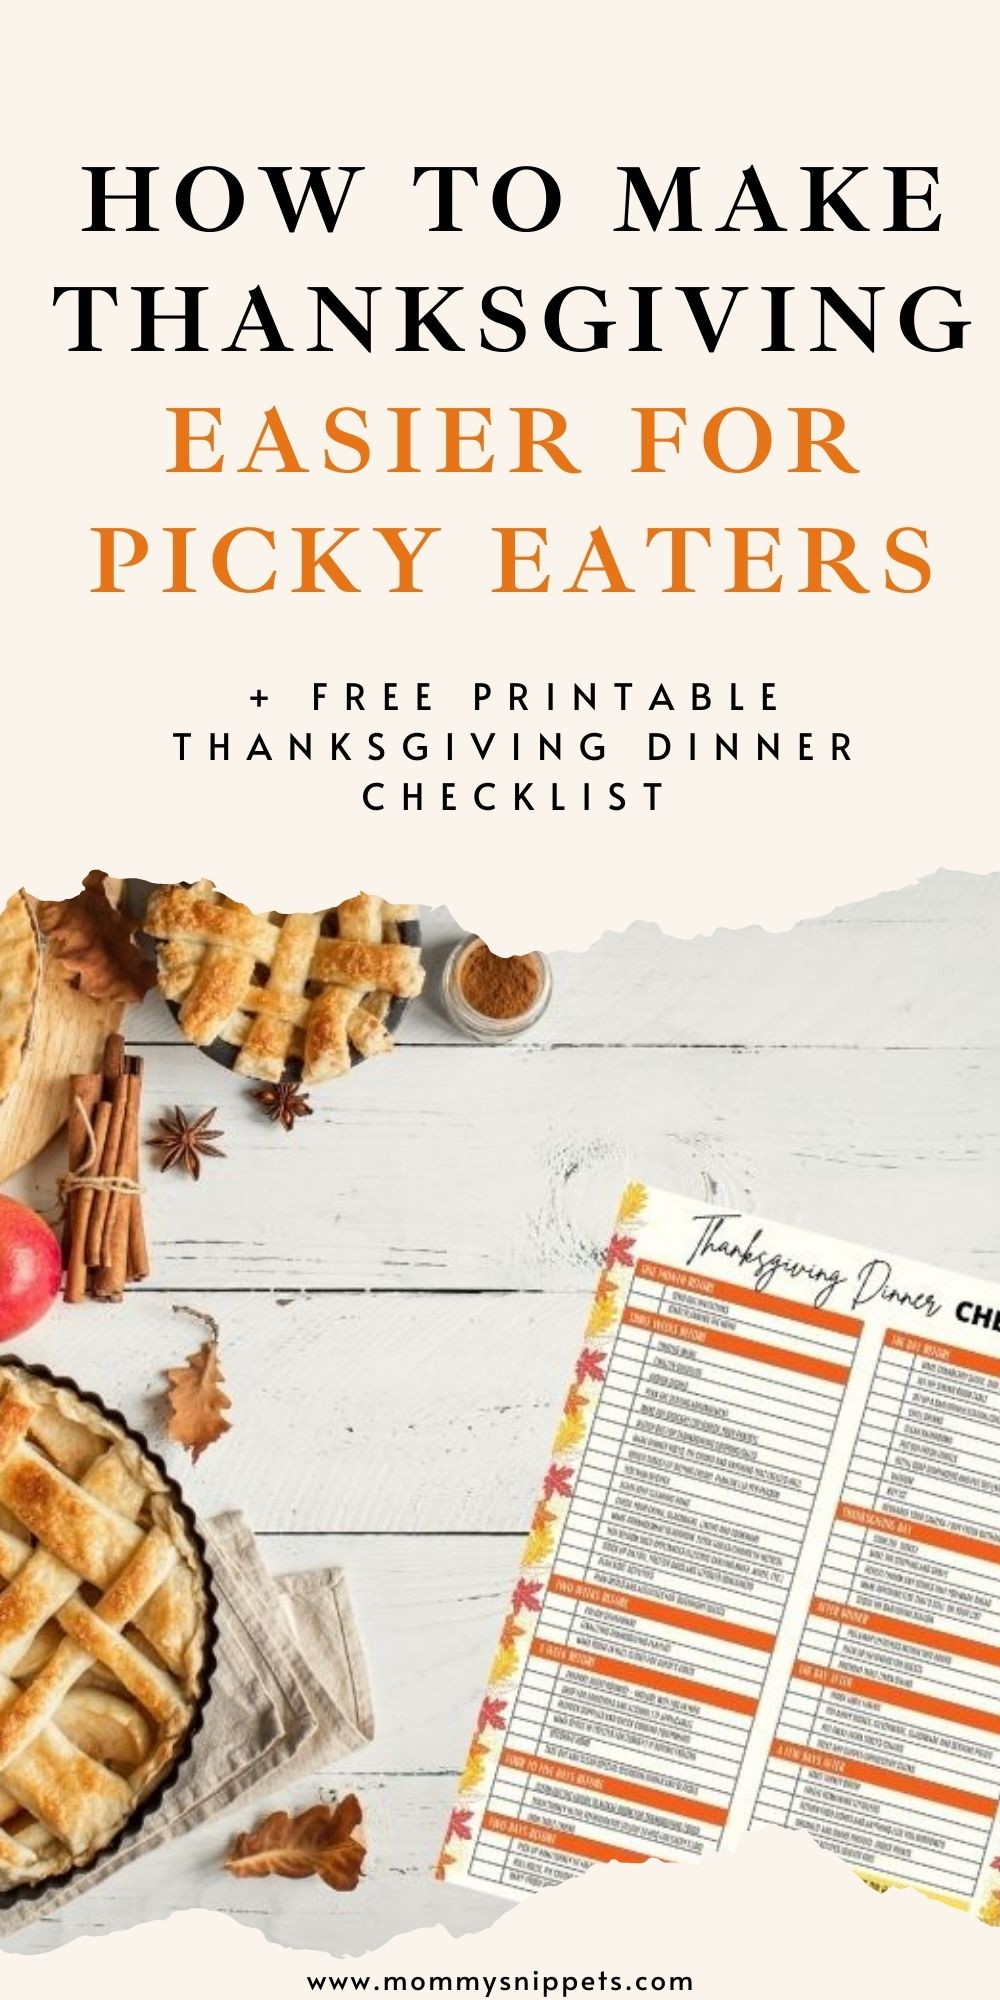 How to make Thanksgiving easier for picky eaters (+ Printable Thanksgiving Dinner Checklist)- MommySnippets.com